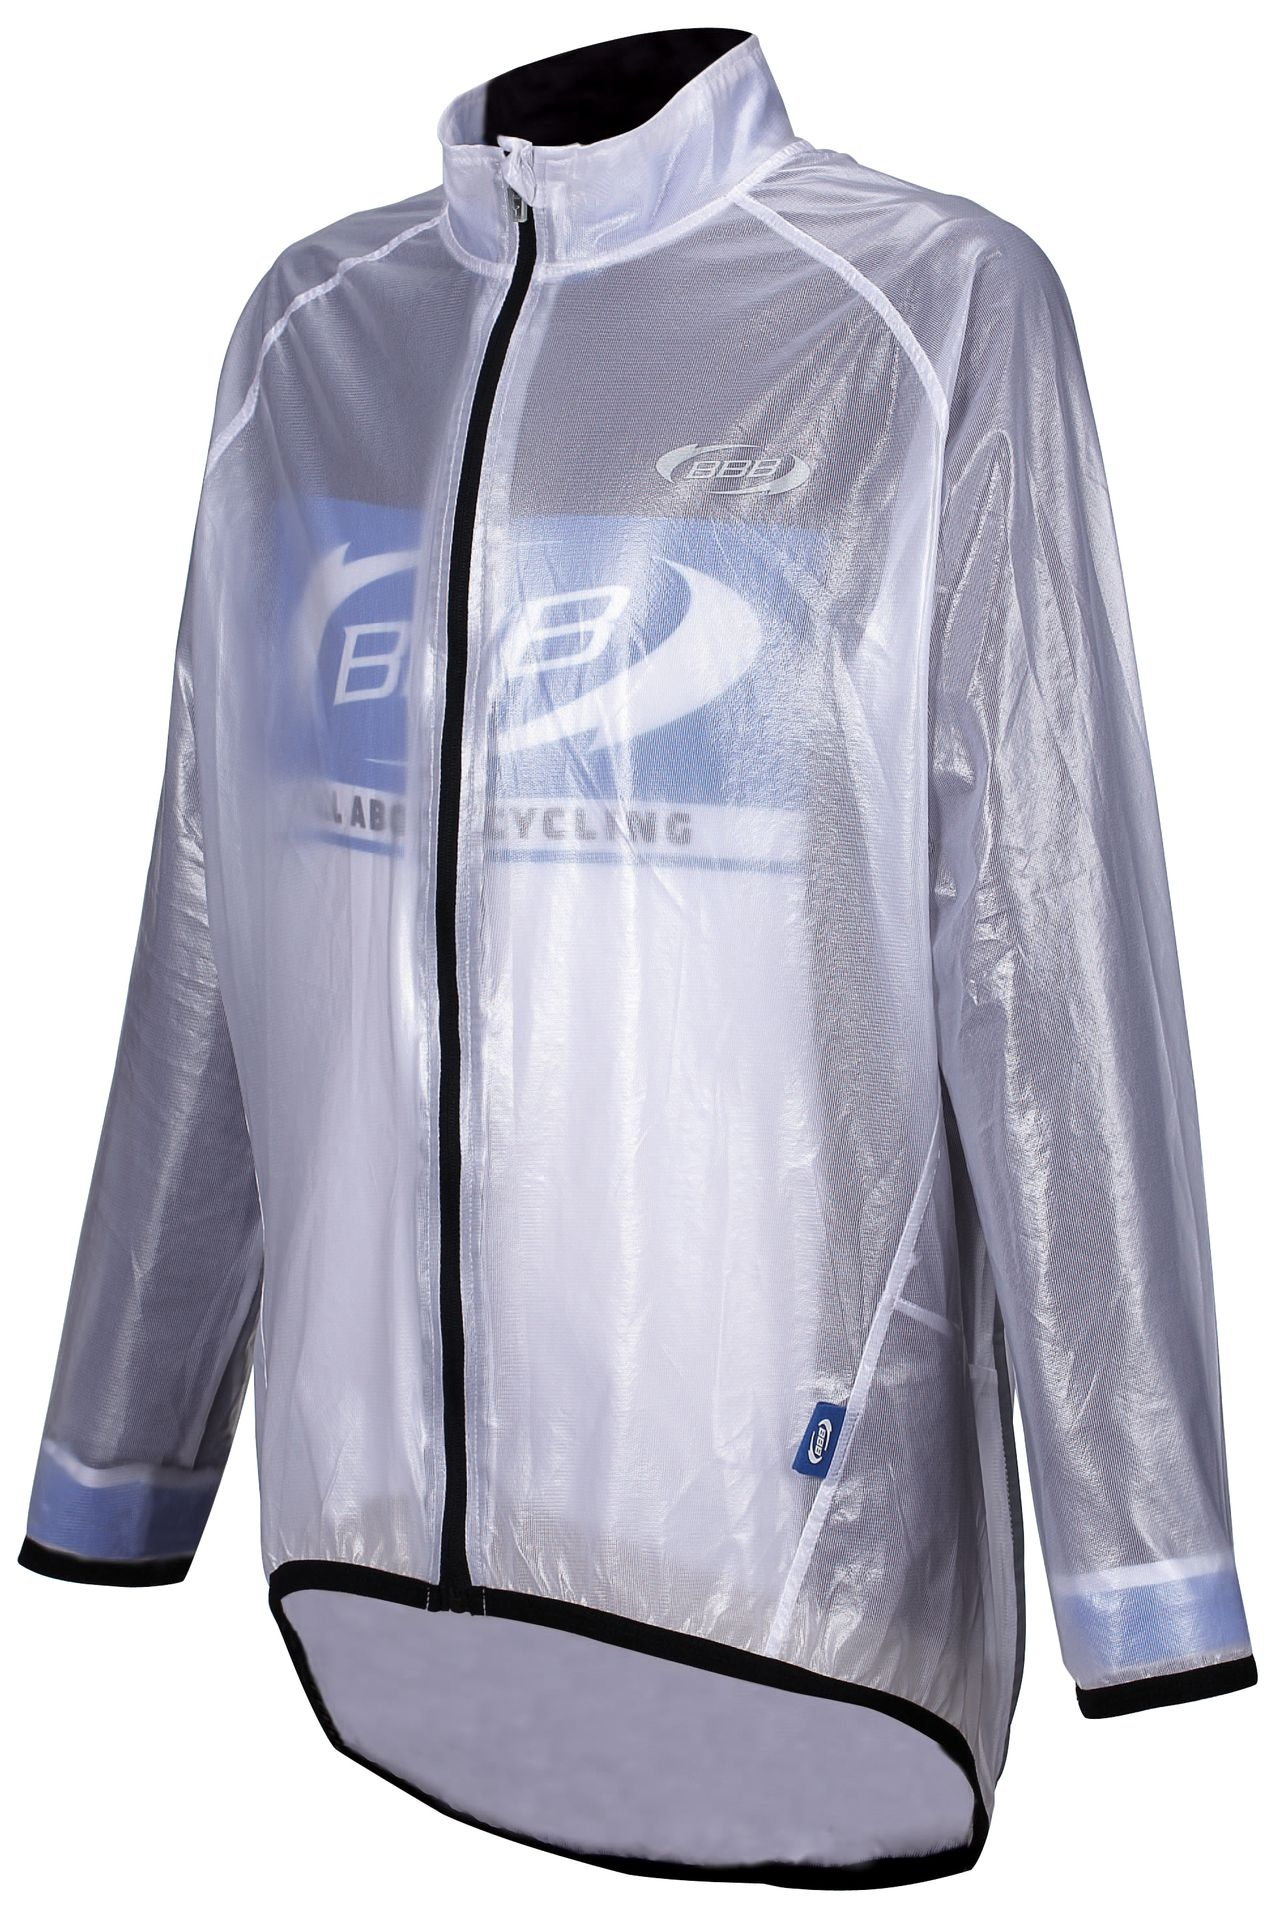 Imperméable transparent enfant BBB TransShield - BBW-228 - 128